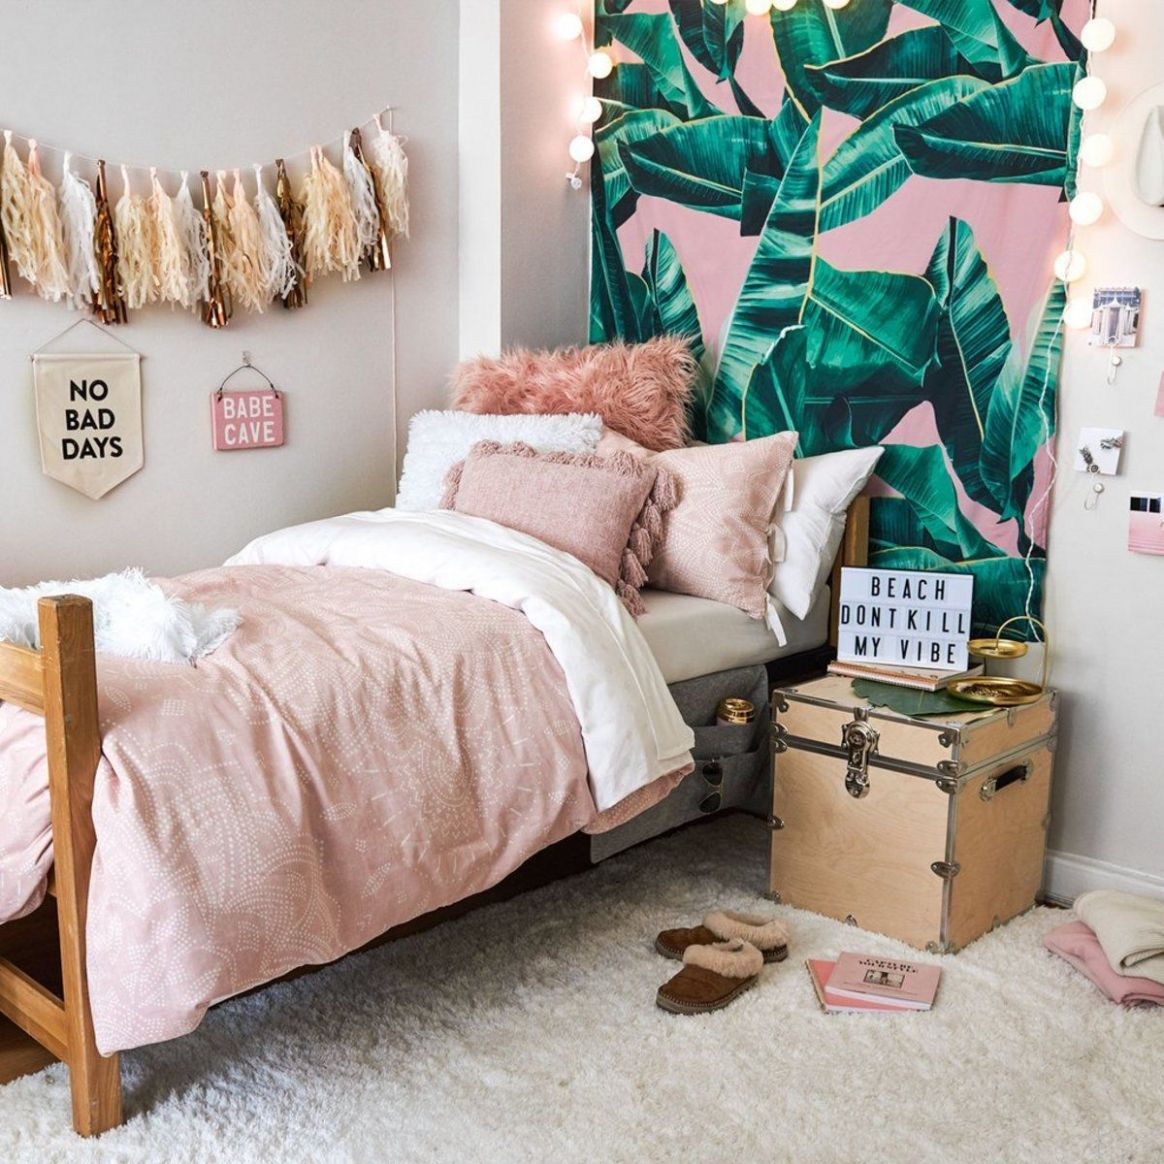 Dorm Room Design Ideas You Should Know When Moving into A College ..